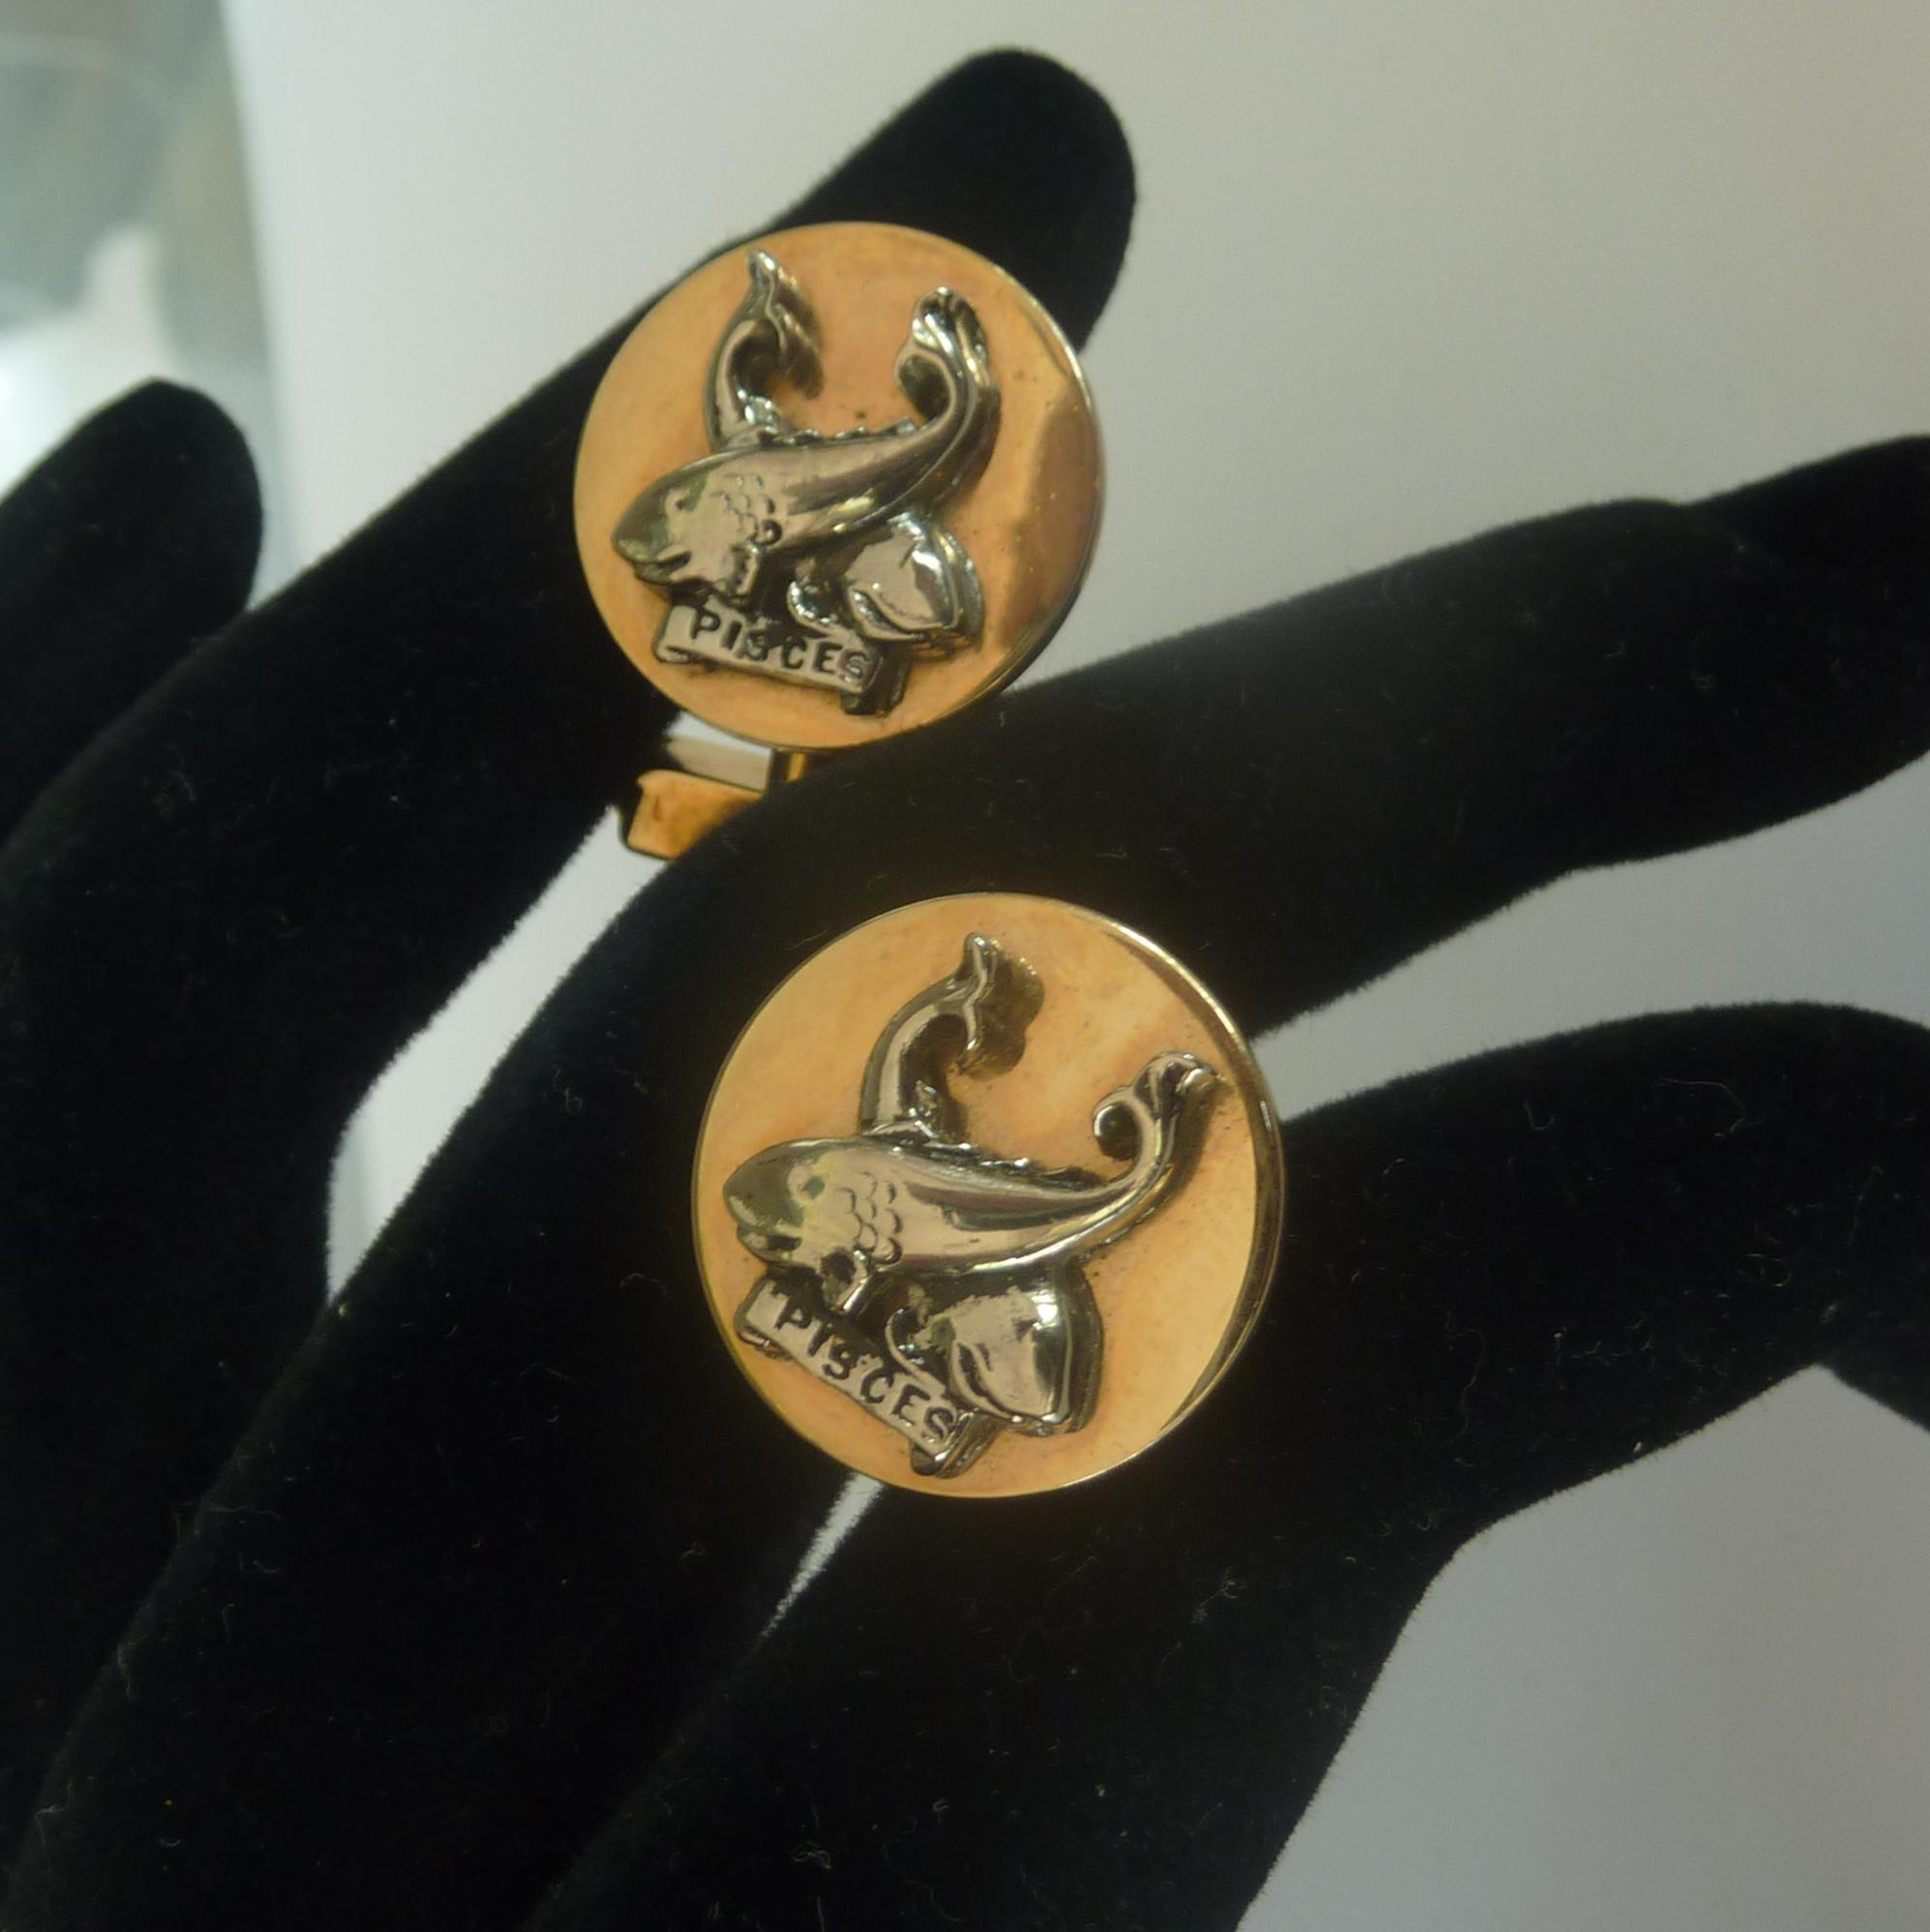 Astrological Pisces Sign 2 Fish Cufflinks Cuff Links